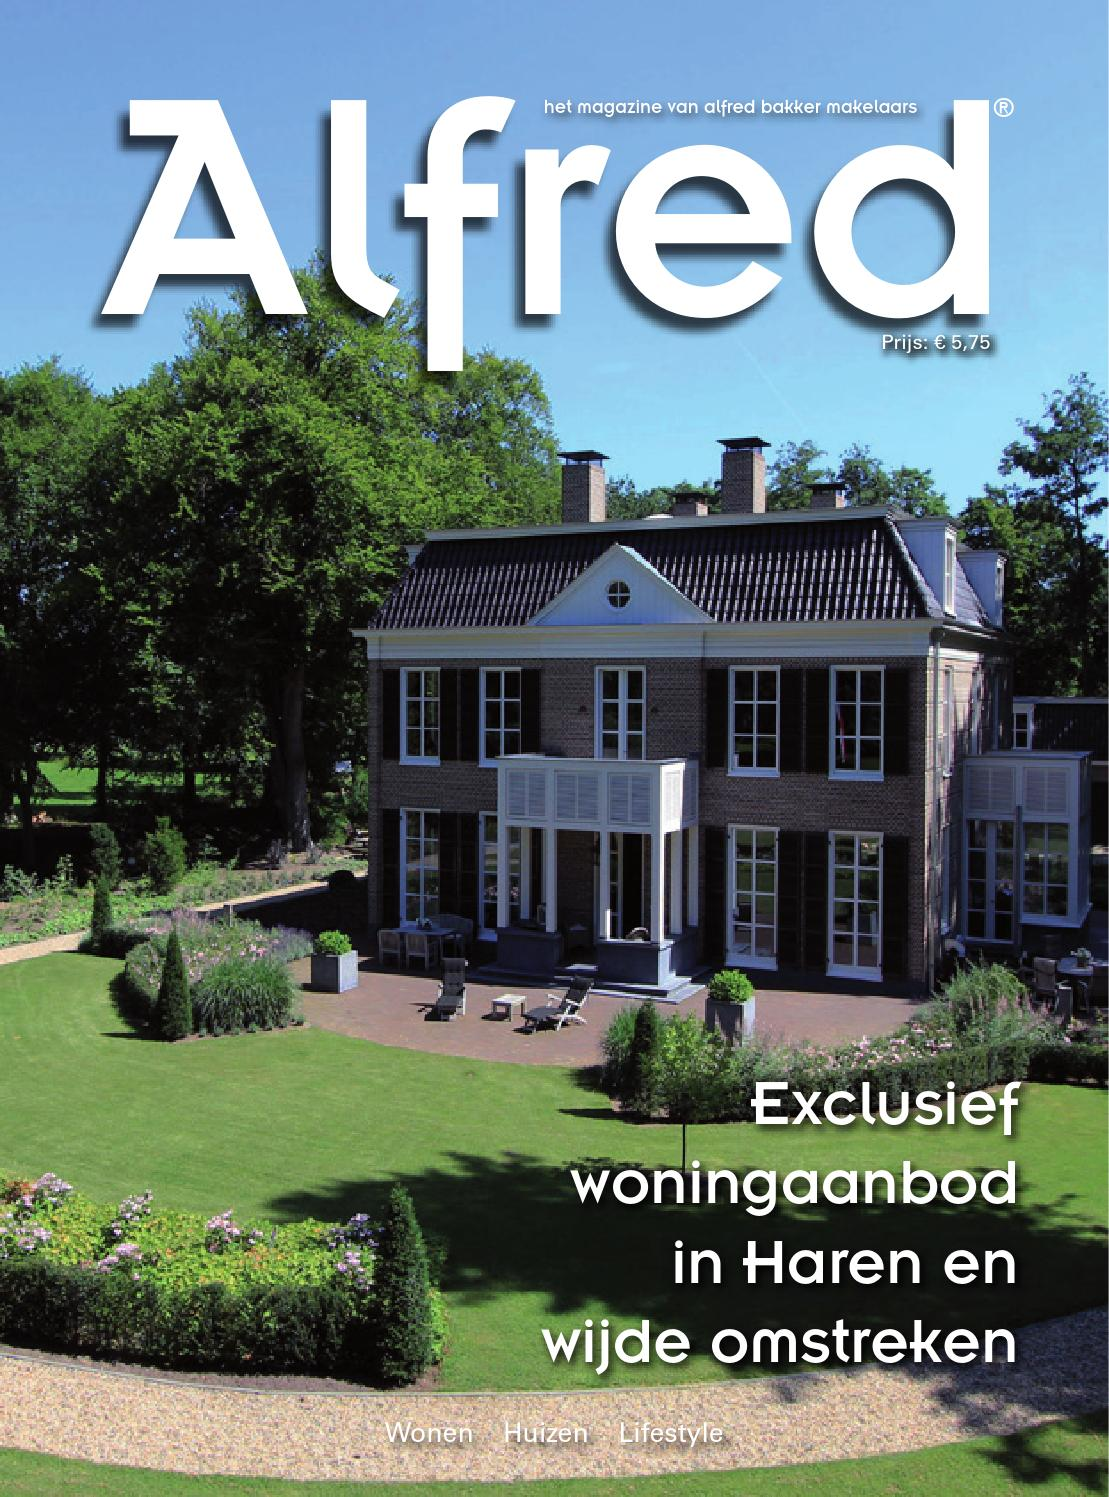 Alfred winter 2015 - 2016 by Karin Schepers - issuu